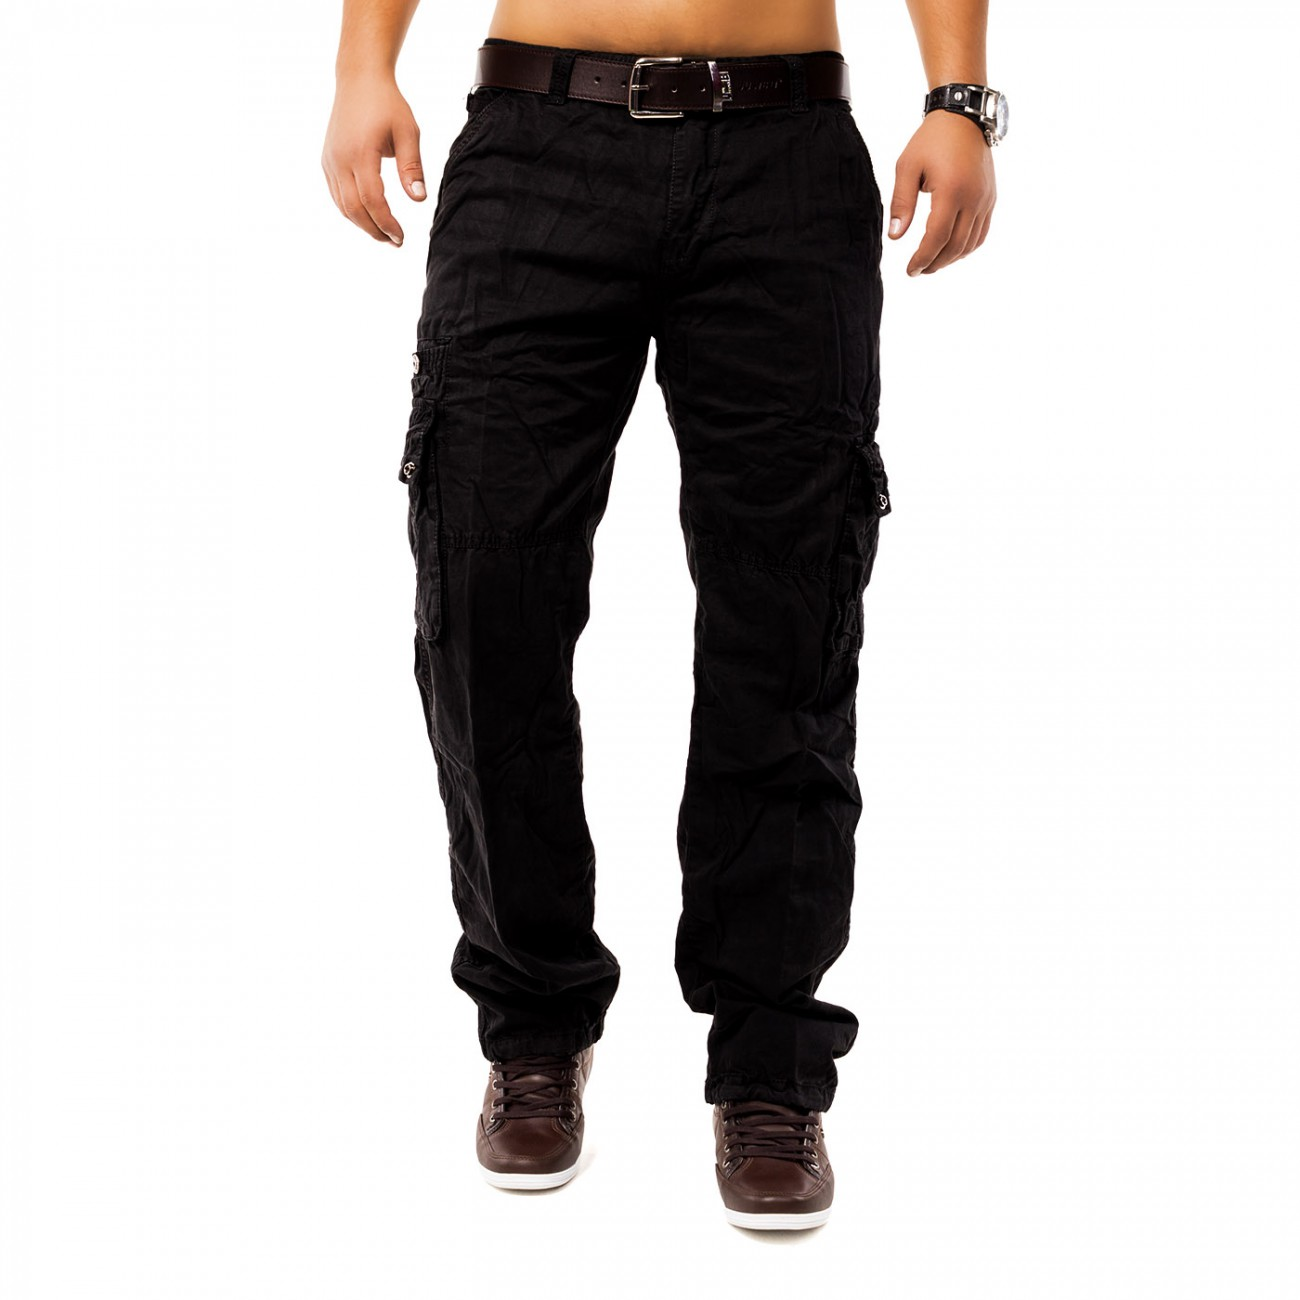 Cargo Hose Jeans Loose Fit Chinohose Cargohose Work Trousers Indy Jones Plus